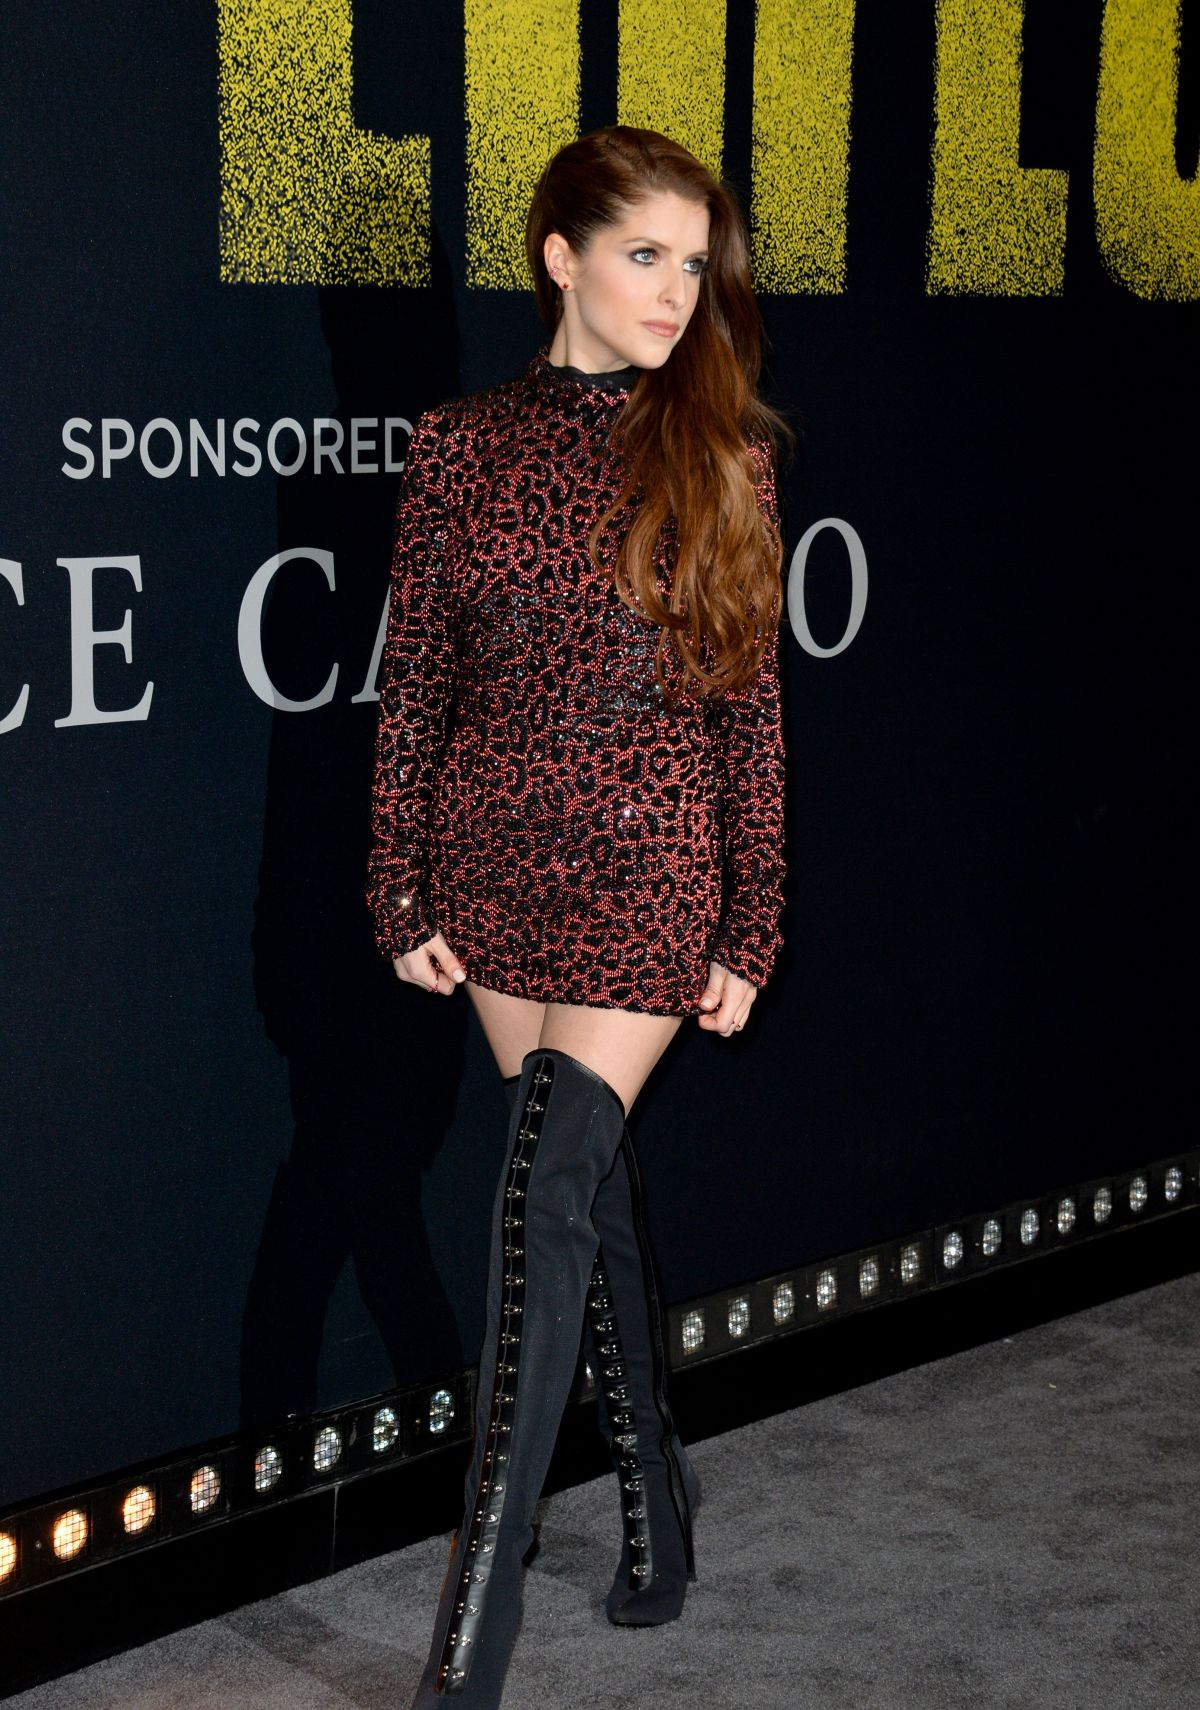 Anna Kendrick At Pitch Perfect 3 Premiere In Los Angeles